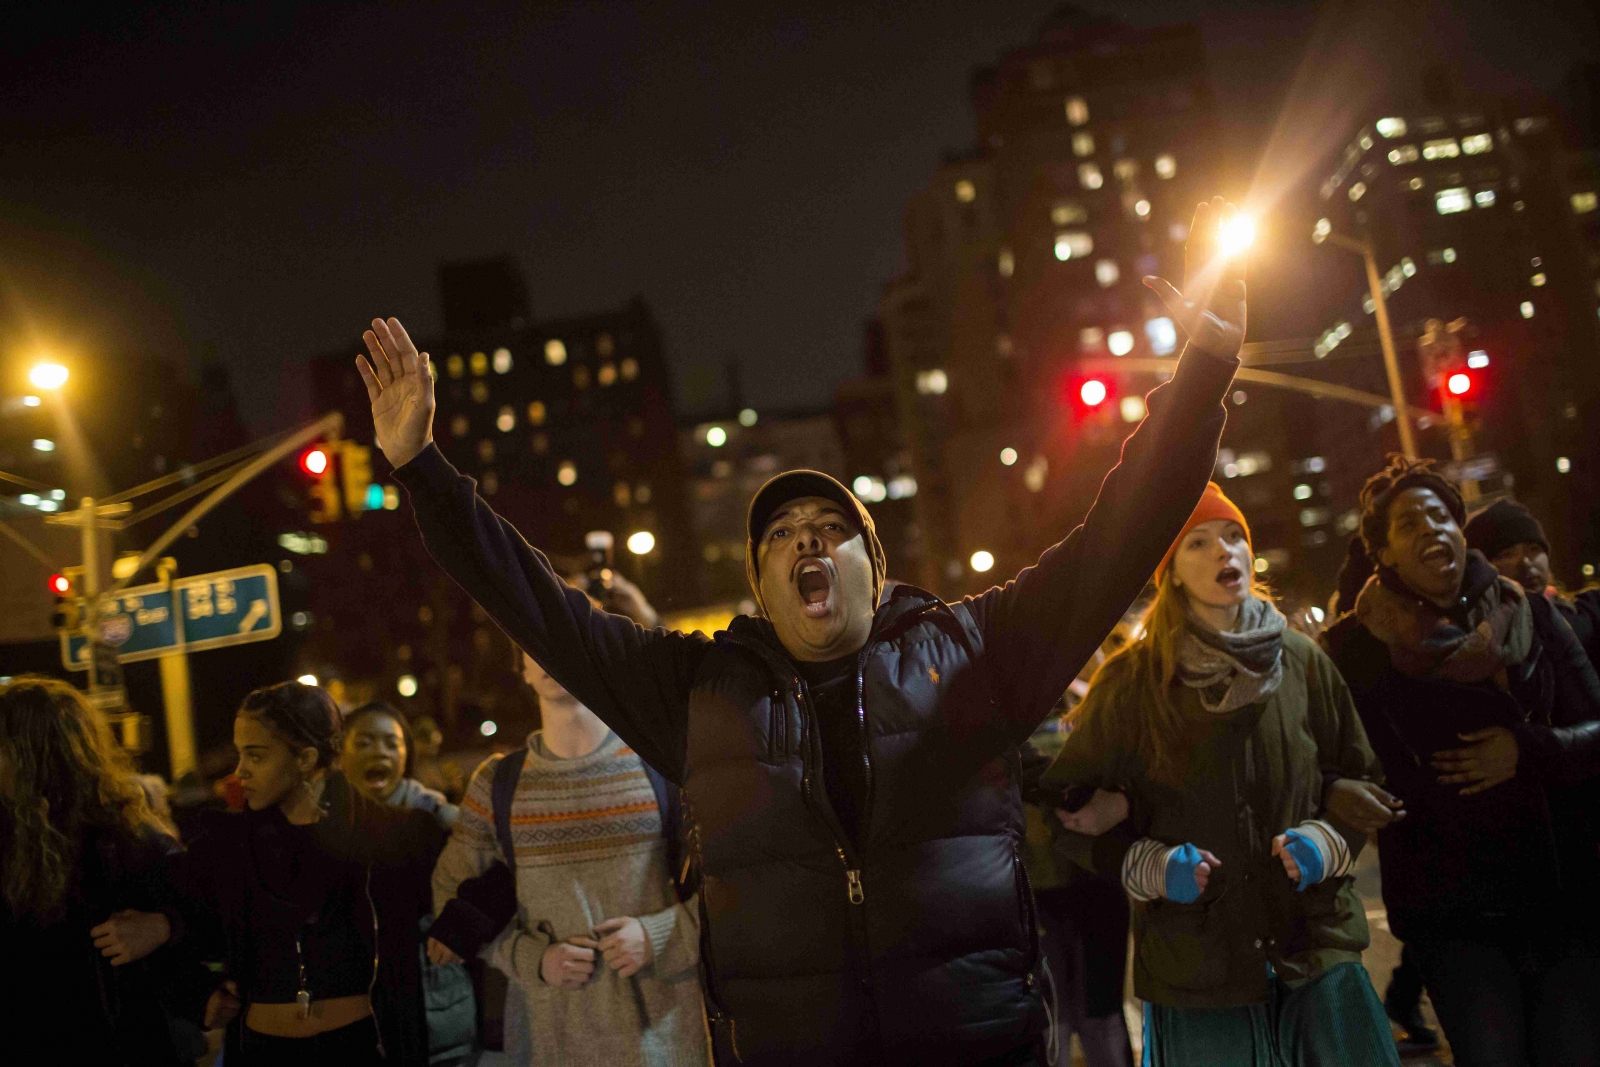 Second night of Protests and arrests in Times Square over Garner death